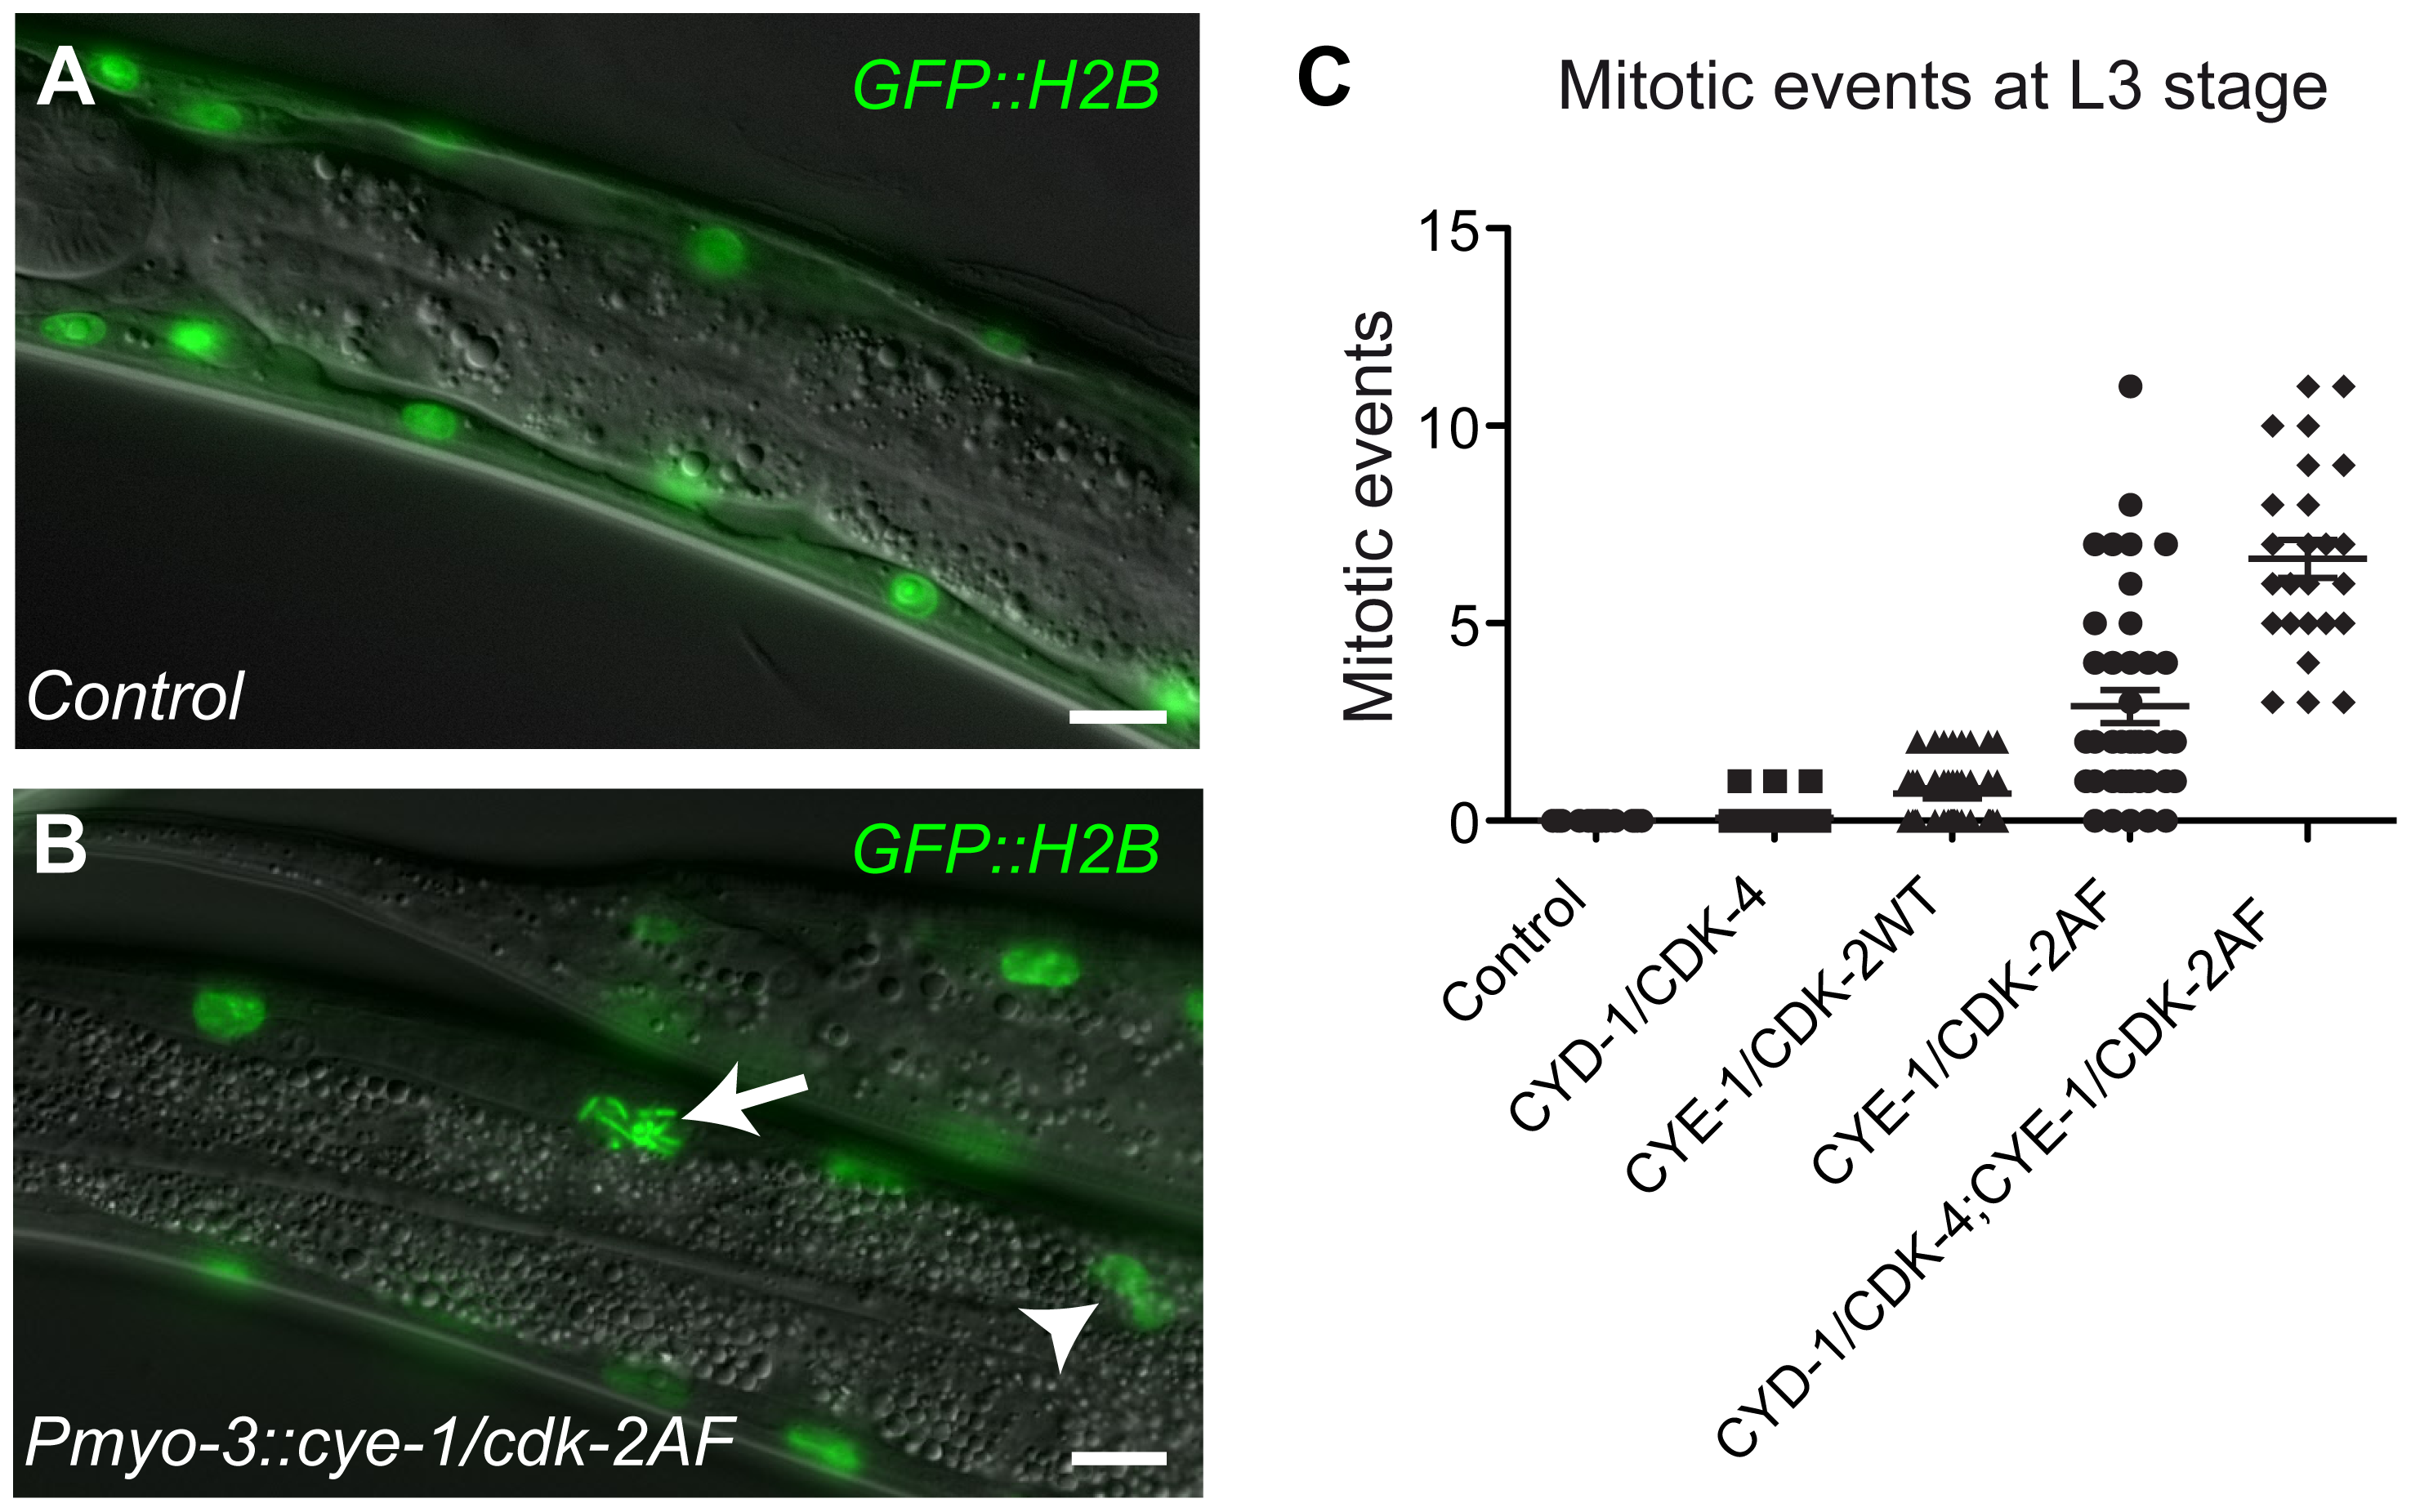 G1 Cyclin/CDK expression induces mitotic events in body-wall muscle cells.